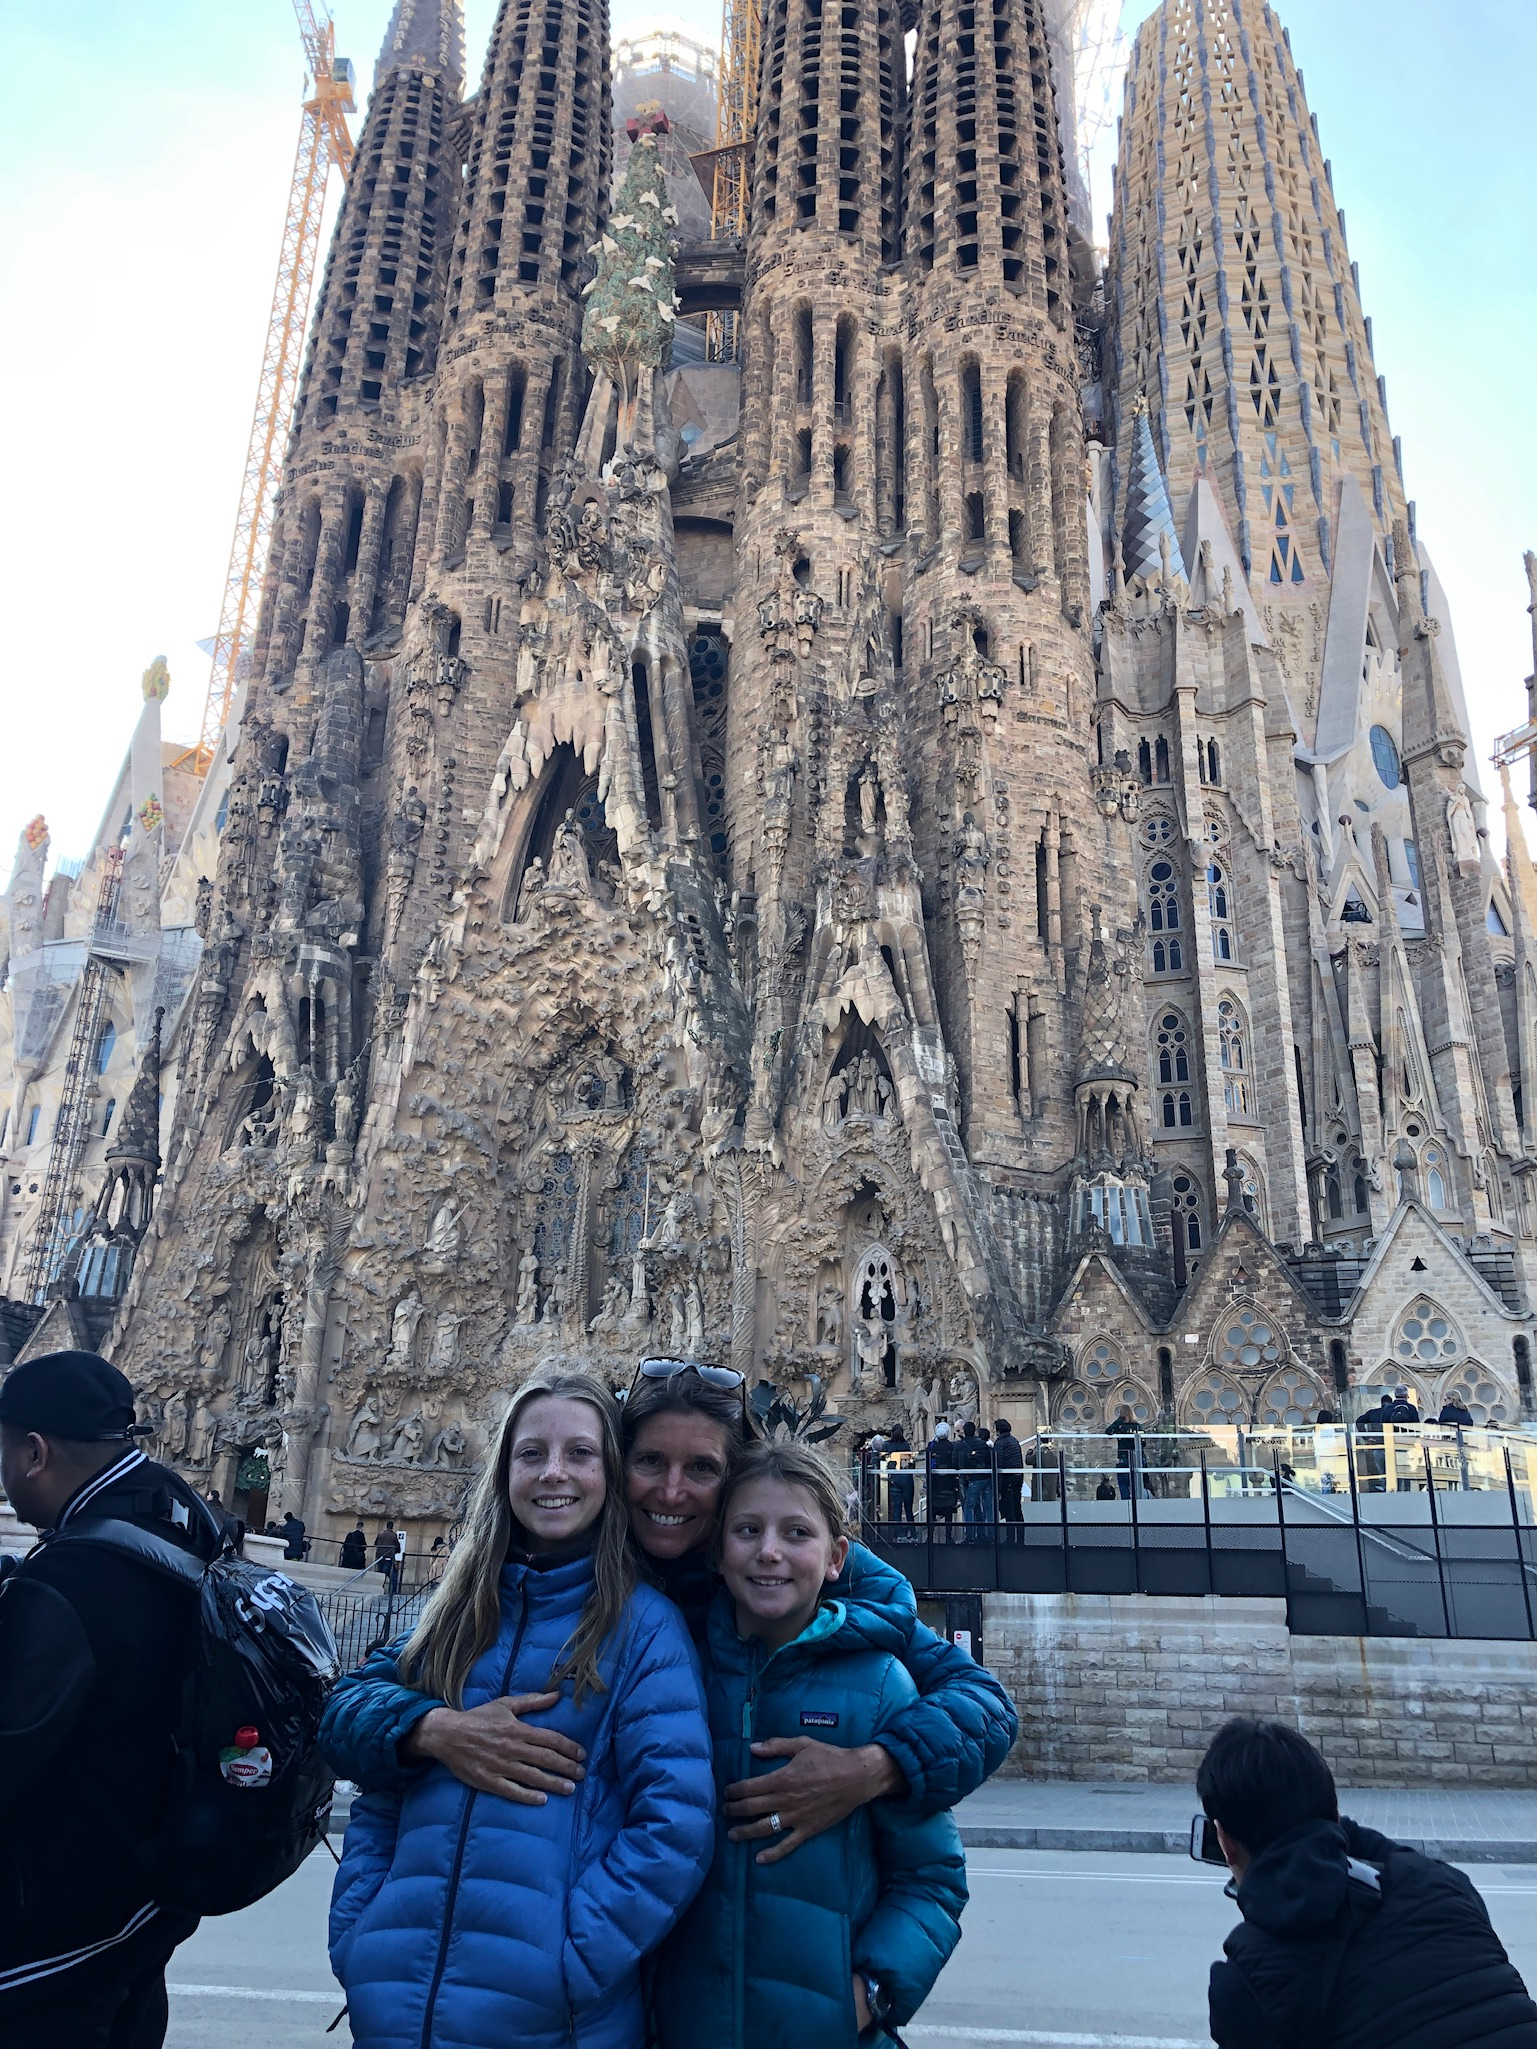 My sagrada familia in front of the Sagrada Familia